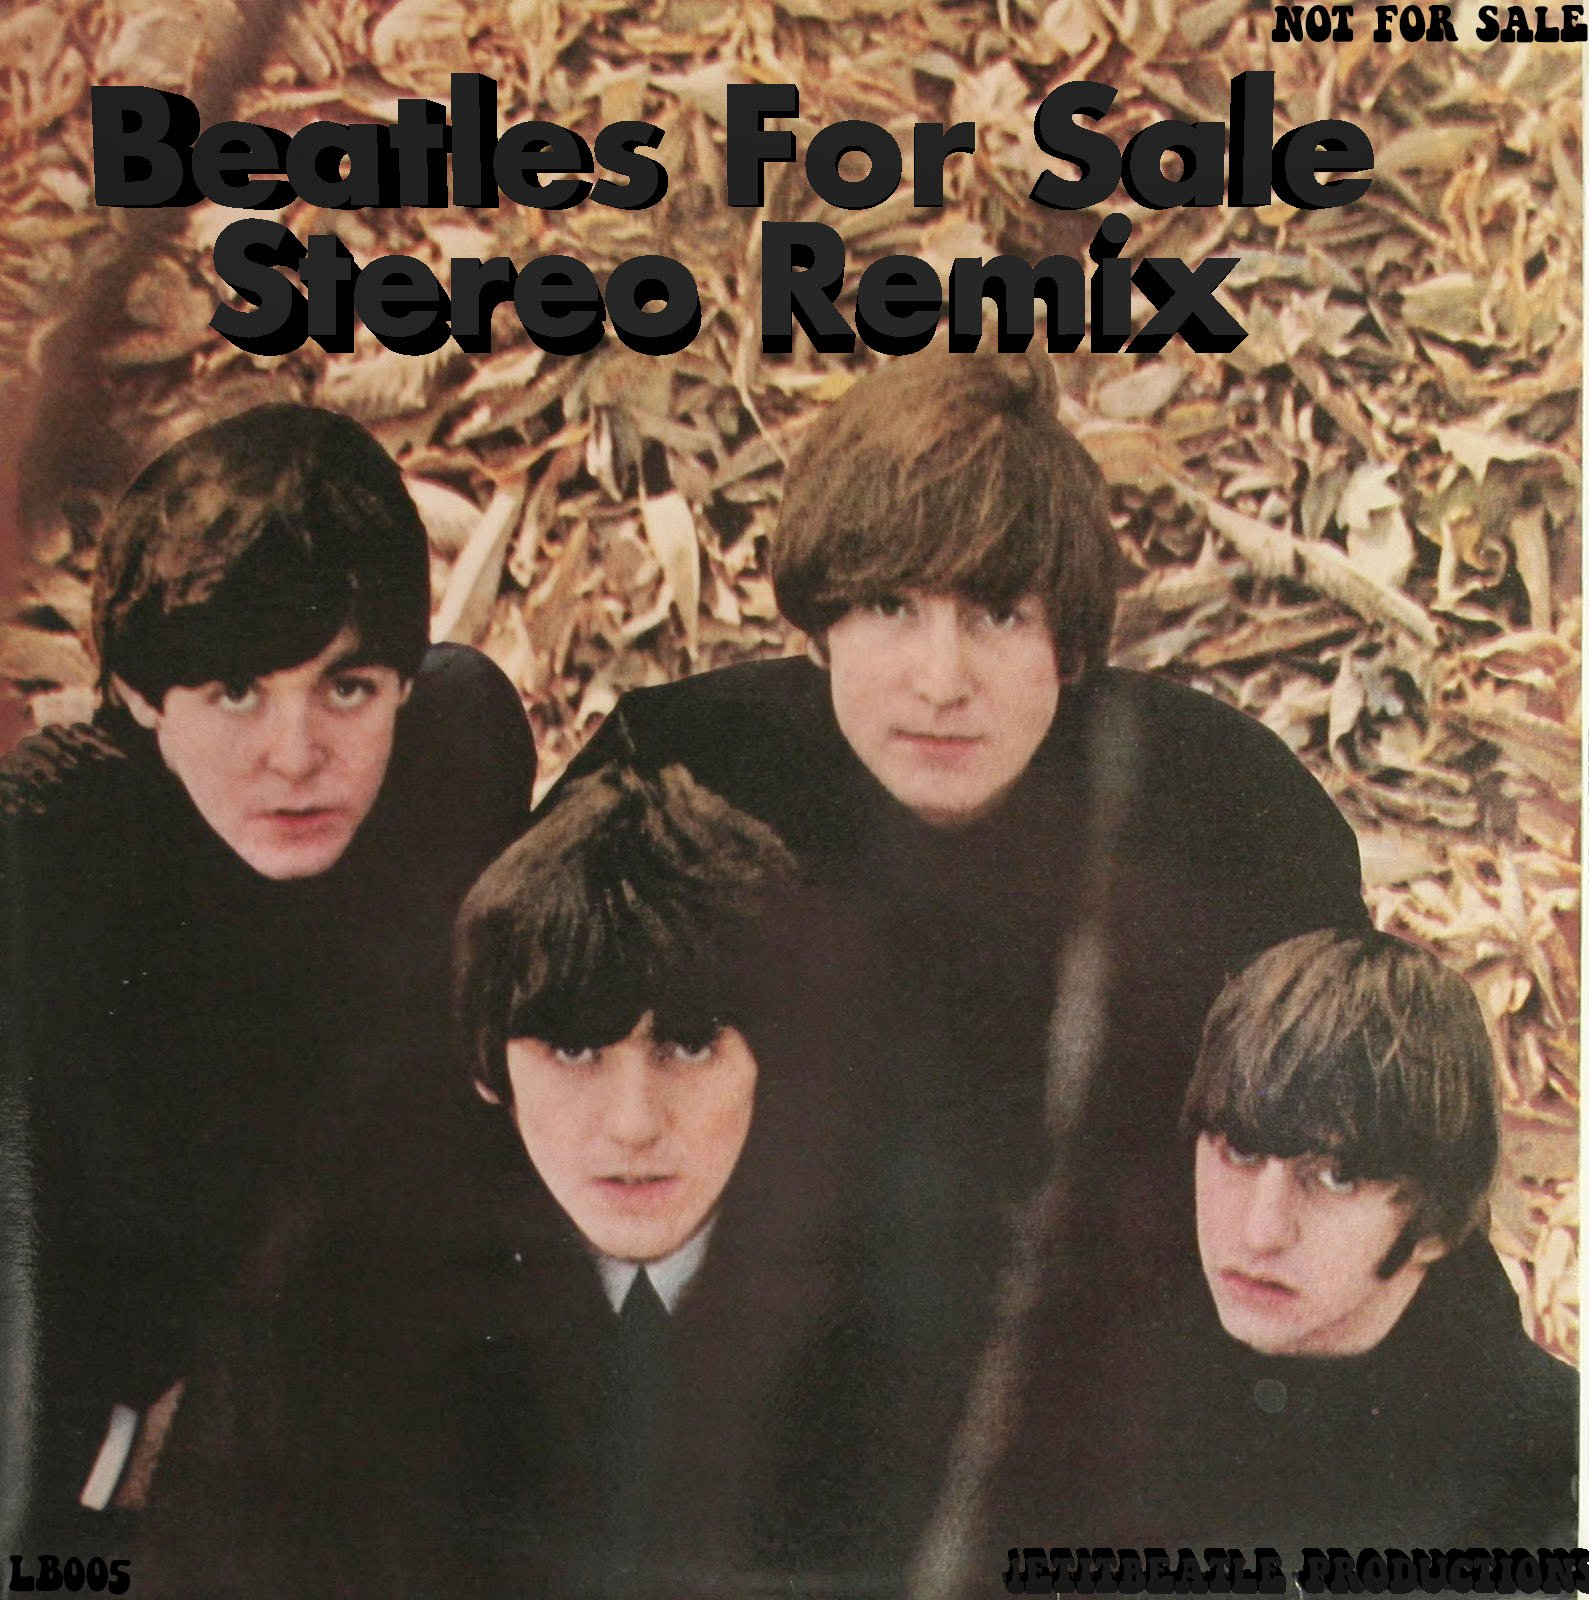 BootlegZone • View topic - LB-005 - Beatles For Sale (Stereo Remix)